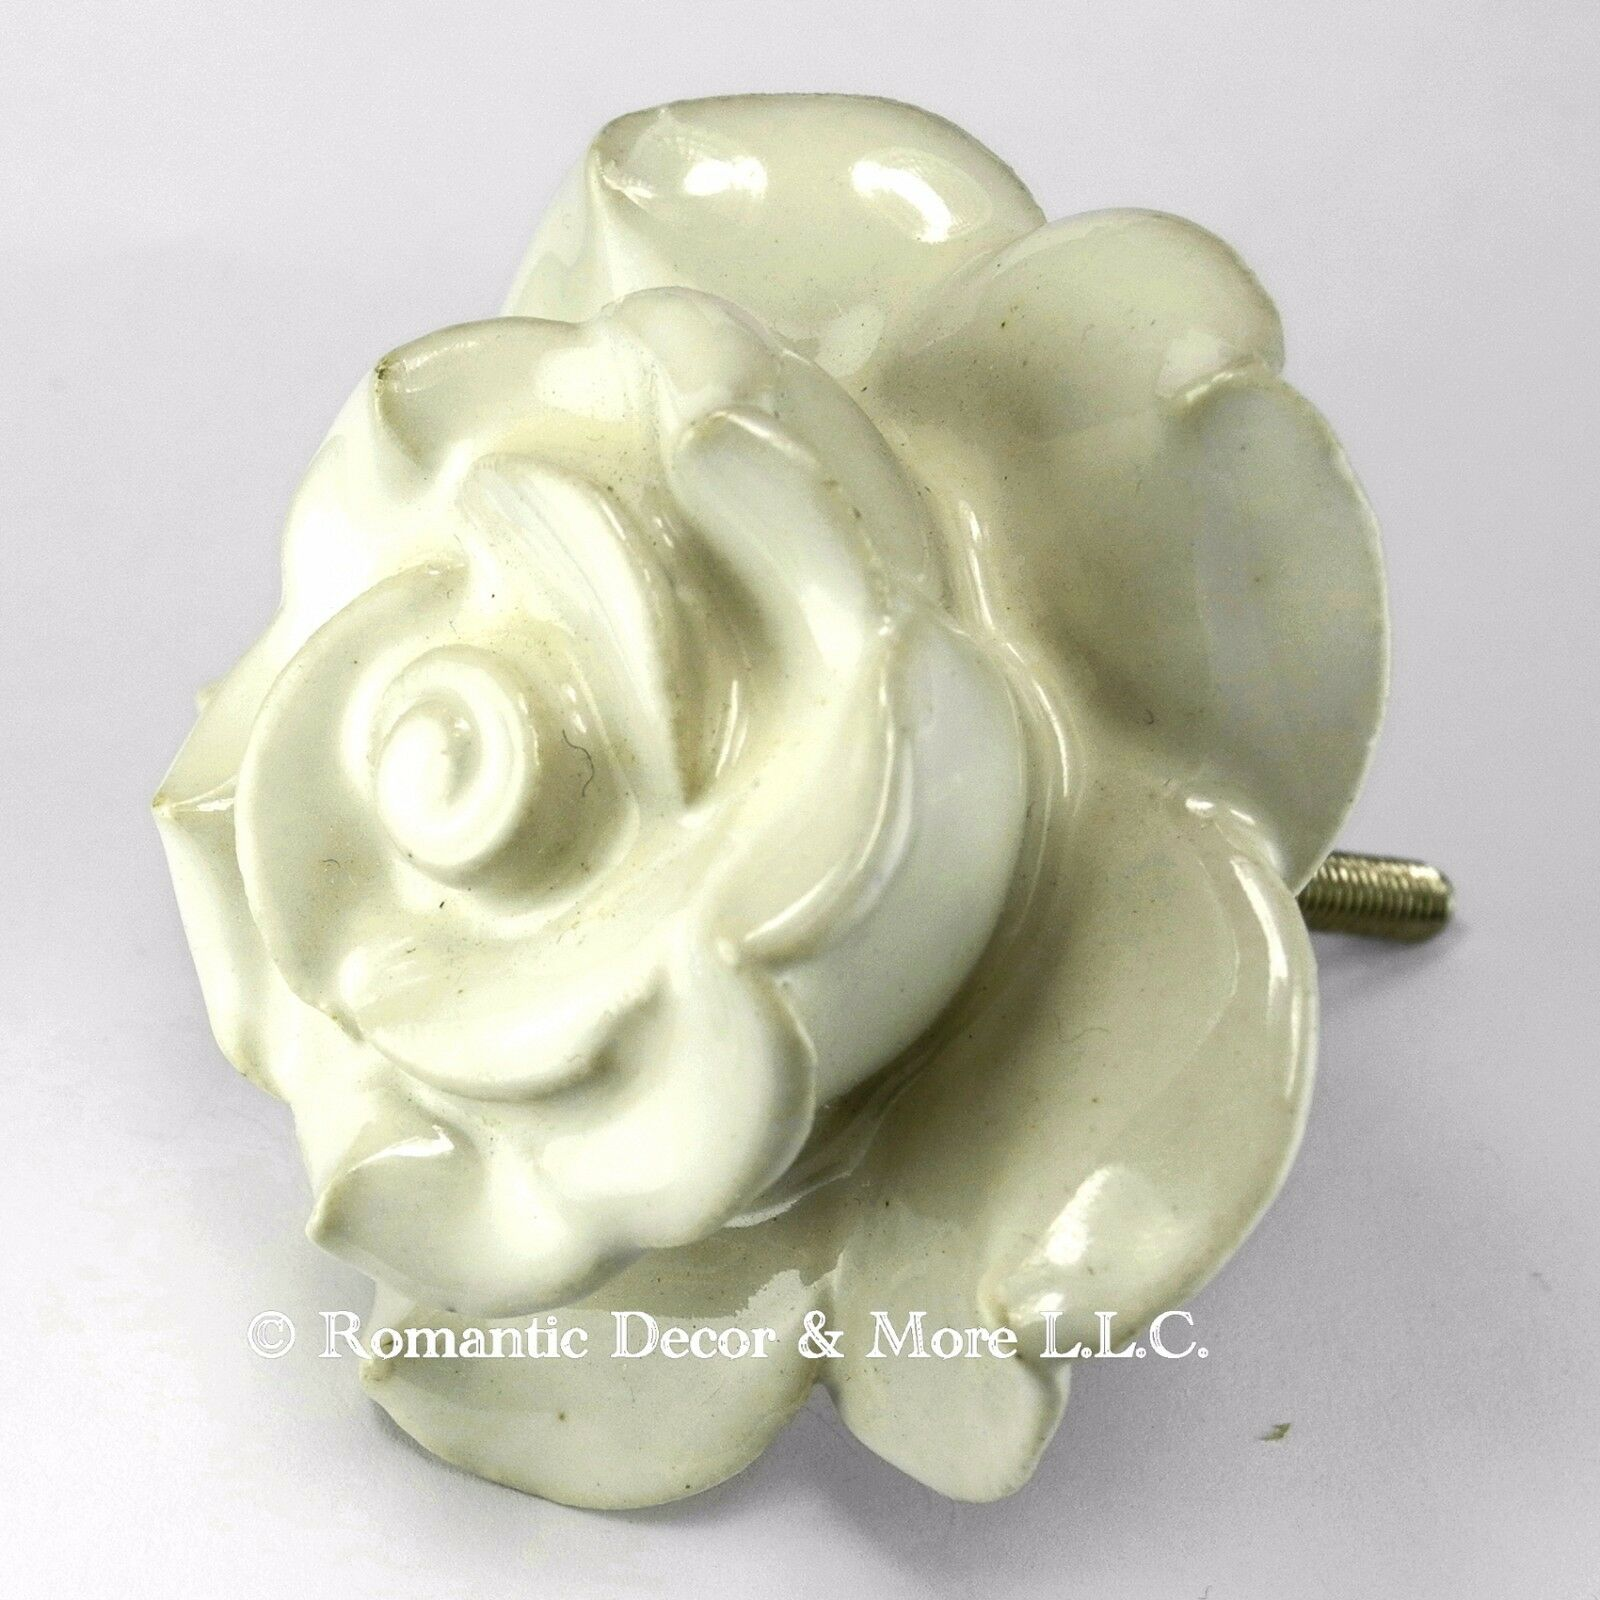 Cabinet Knobs, Ceramic Drawer Handle or Bathroom Knobs and Pulls  C101